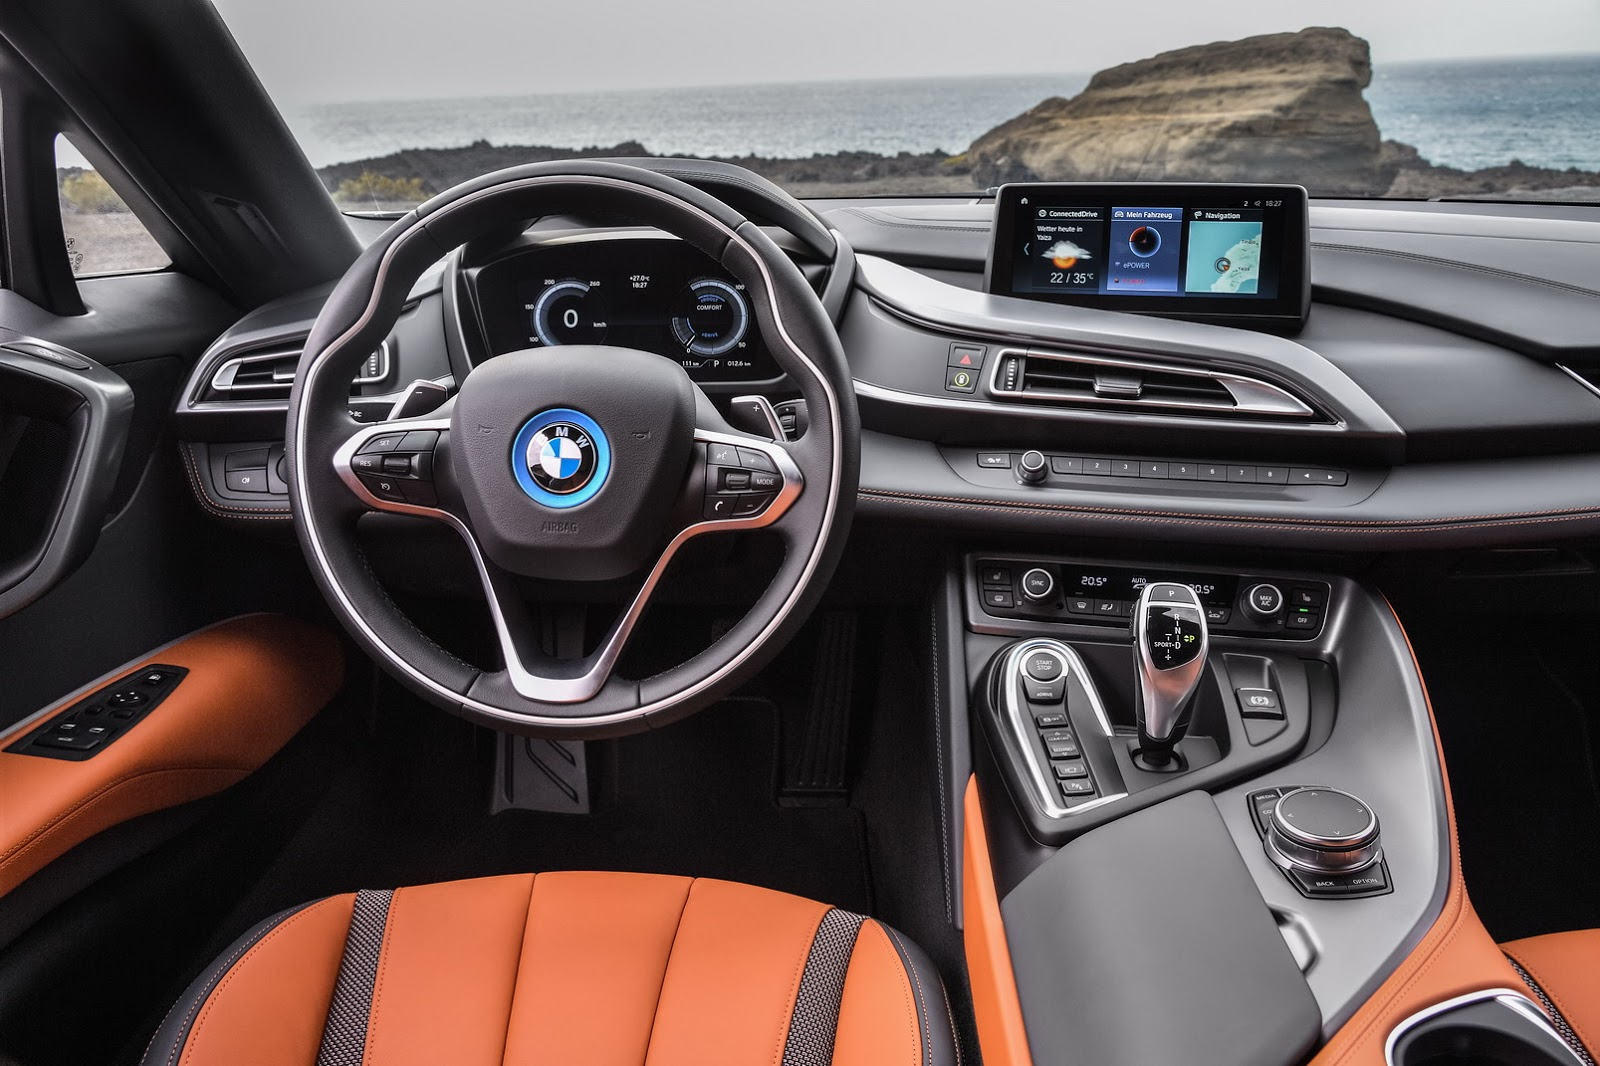 2019-BMW-i8-Roadster-Coupe-51.jpg